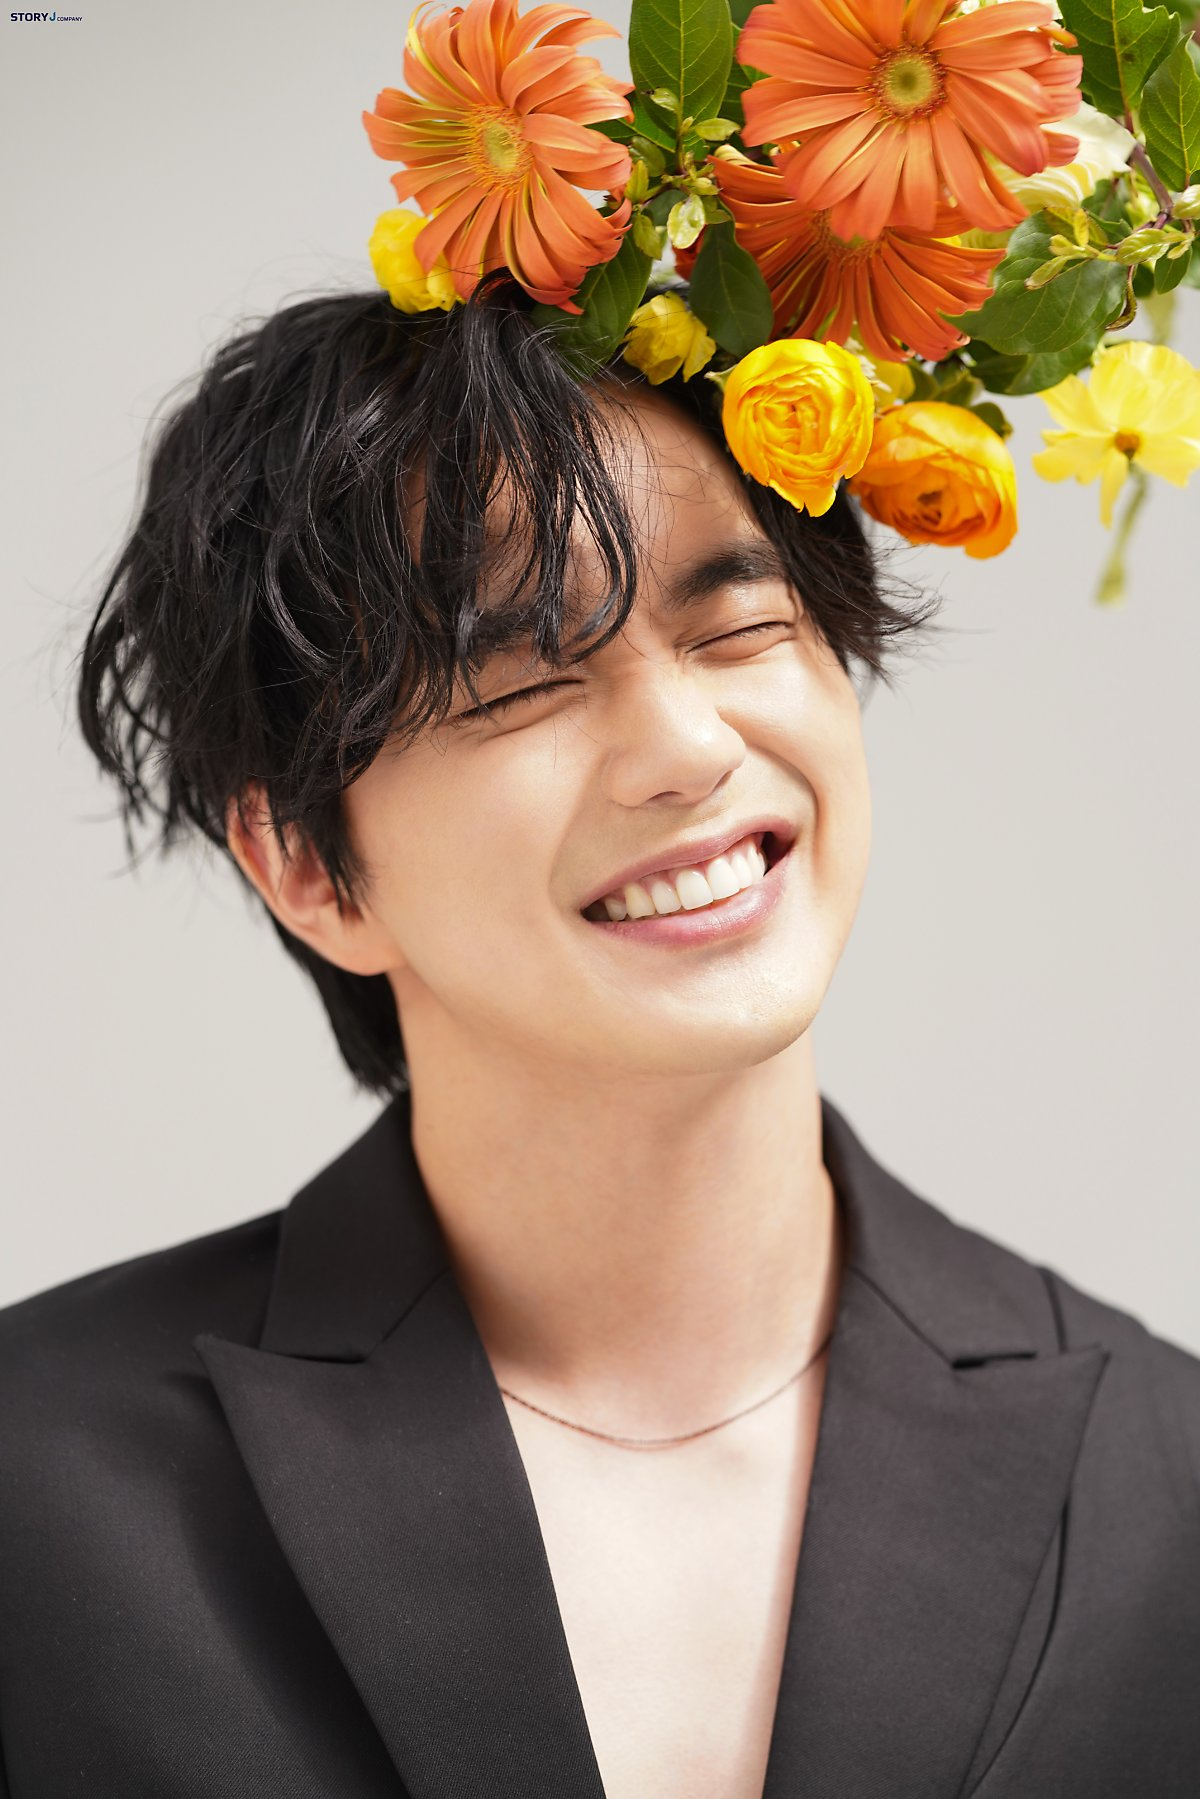 when the flowers bloom, i think of the moon - yoo seung-ho